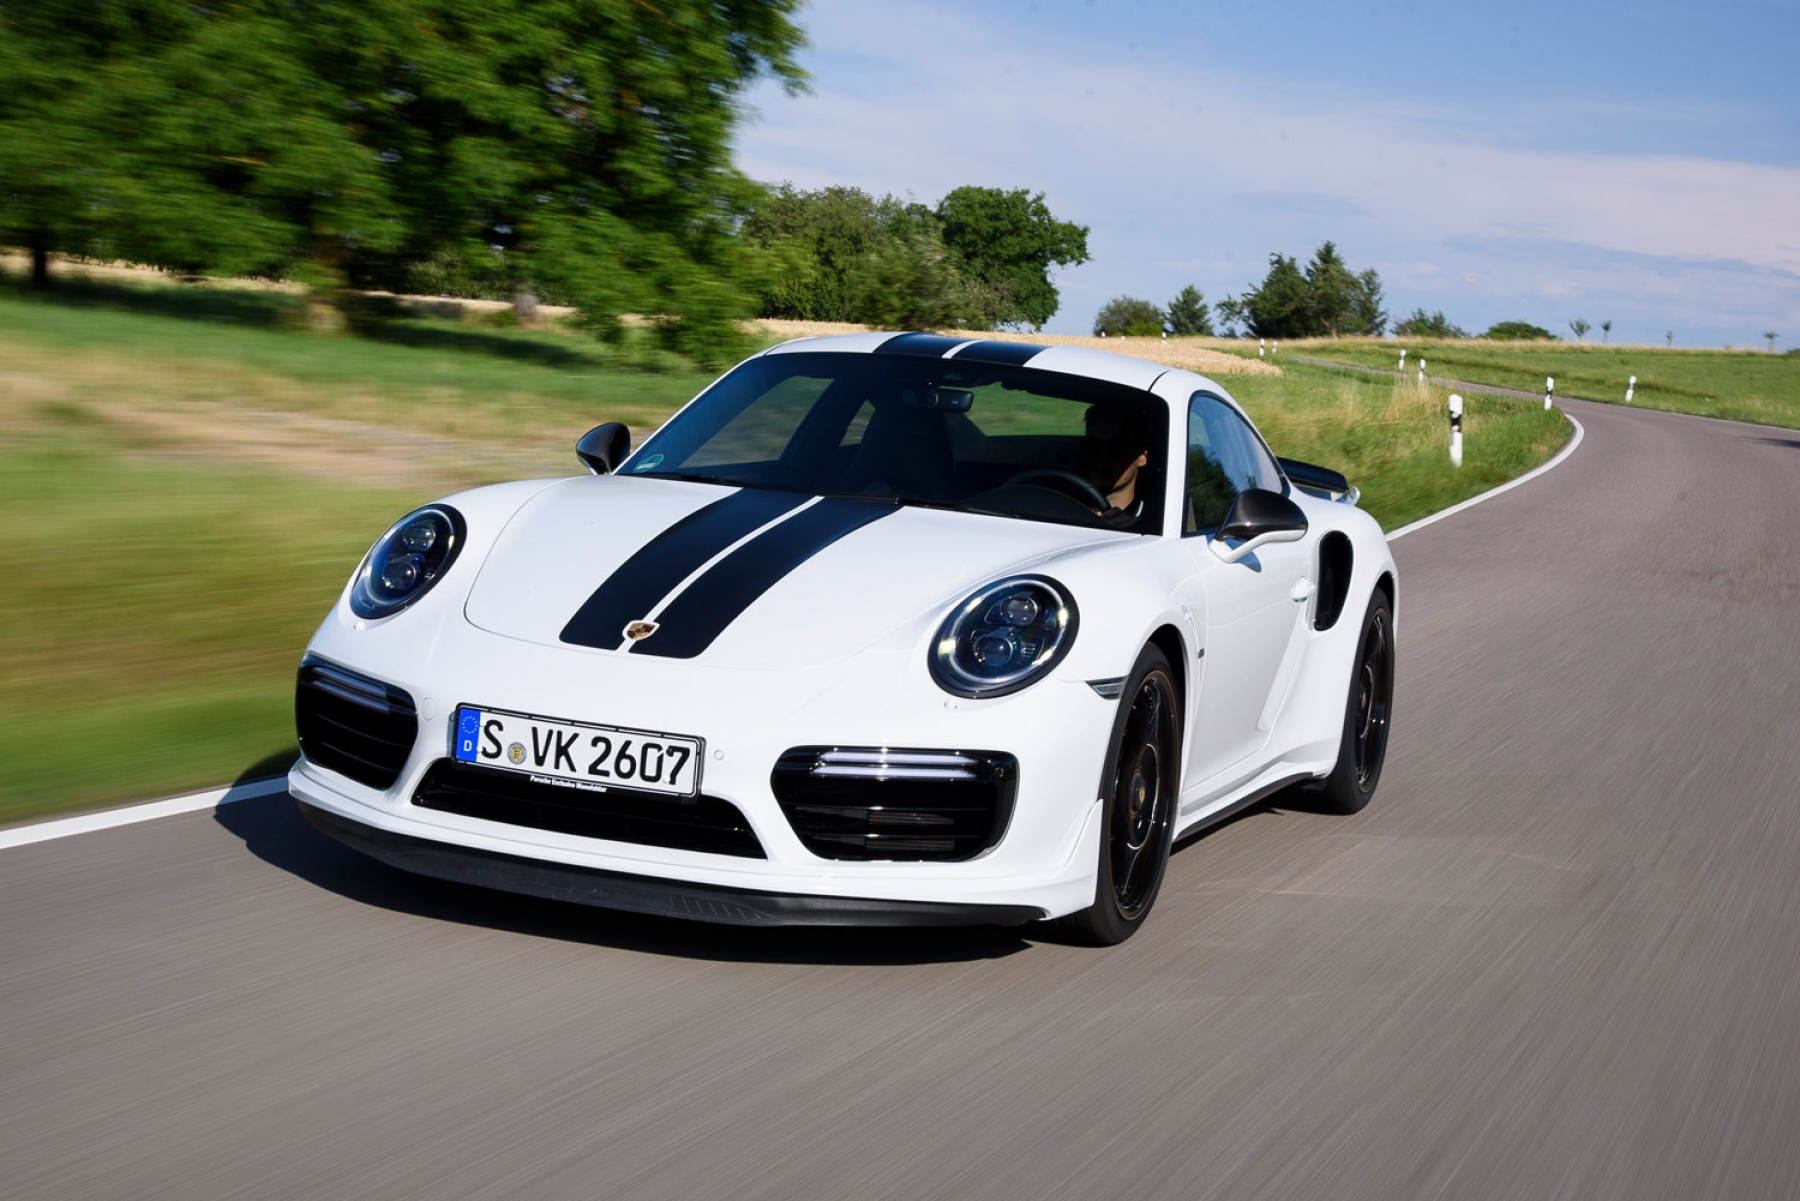 911 Turbo S Exclusive Series Carrara White Metallic